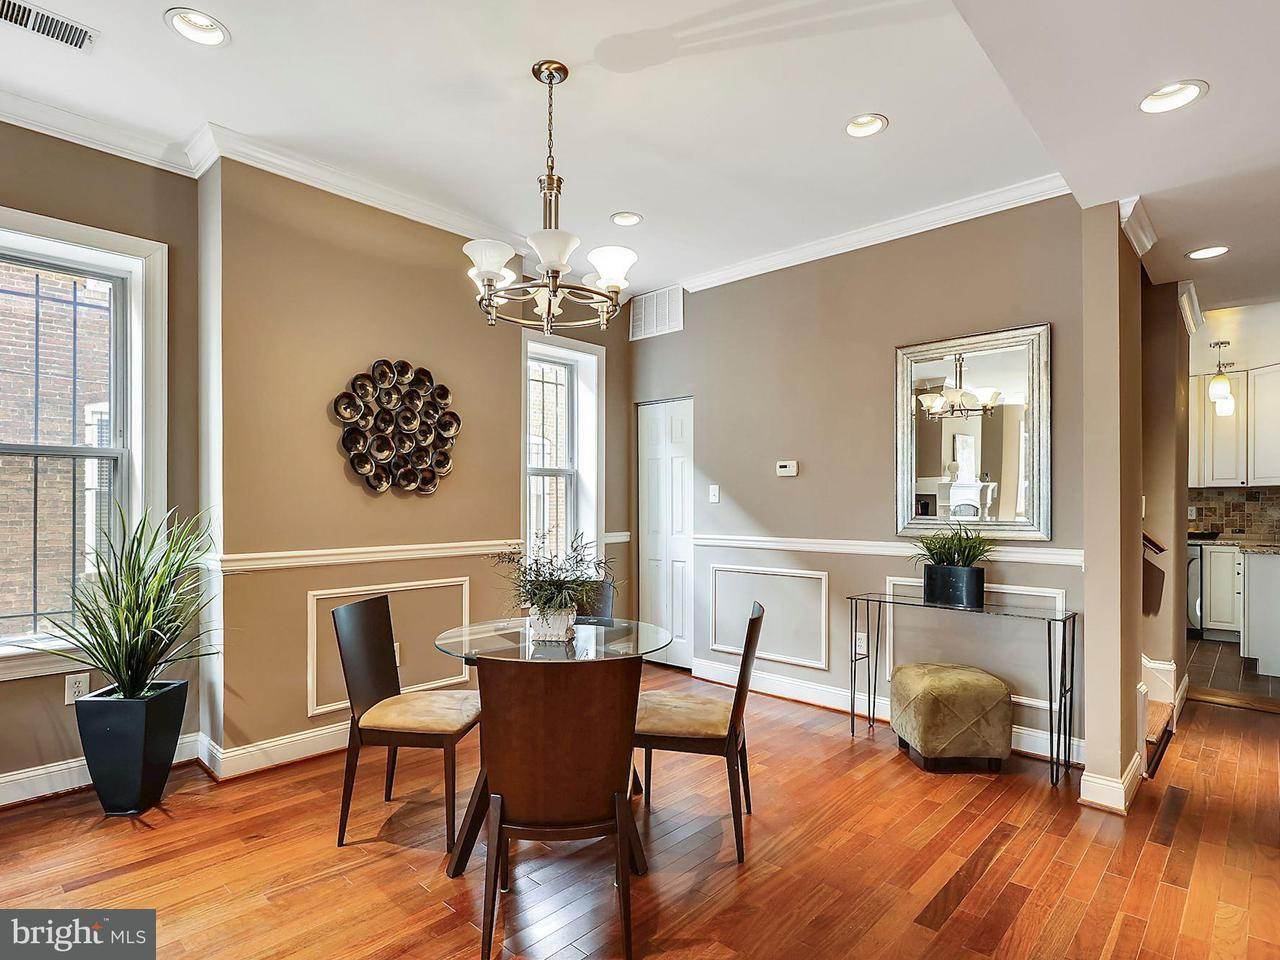 Additional photo for property listing at 818 12th St Ne 818 12th St Ne Washington, District Of Columbia 20002 United States